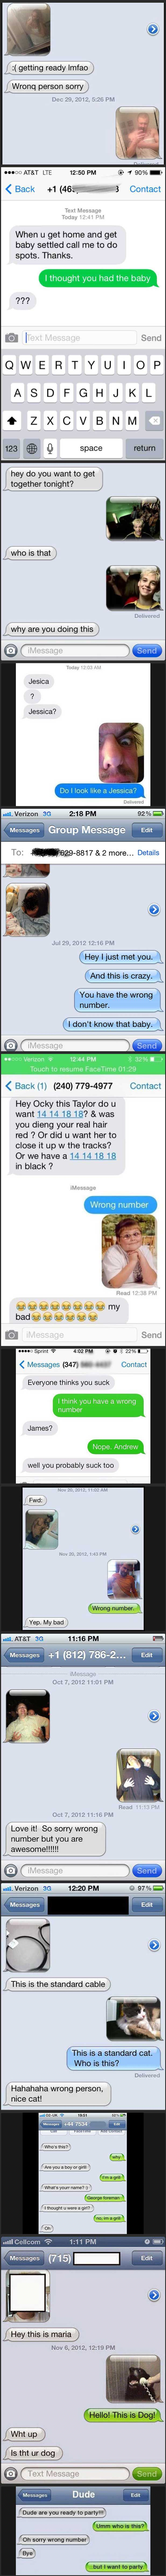 "Some great responses to ""wrong number"" text messages."